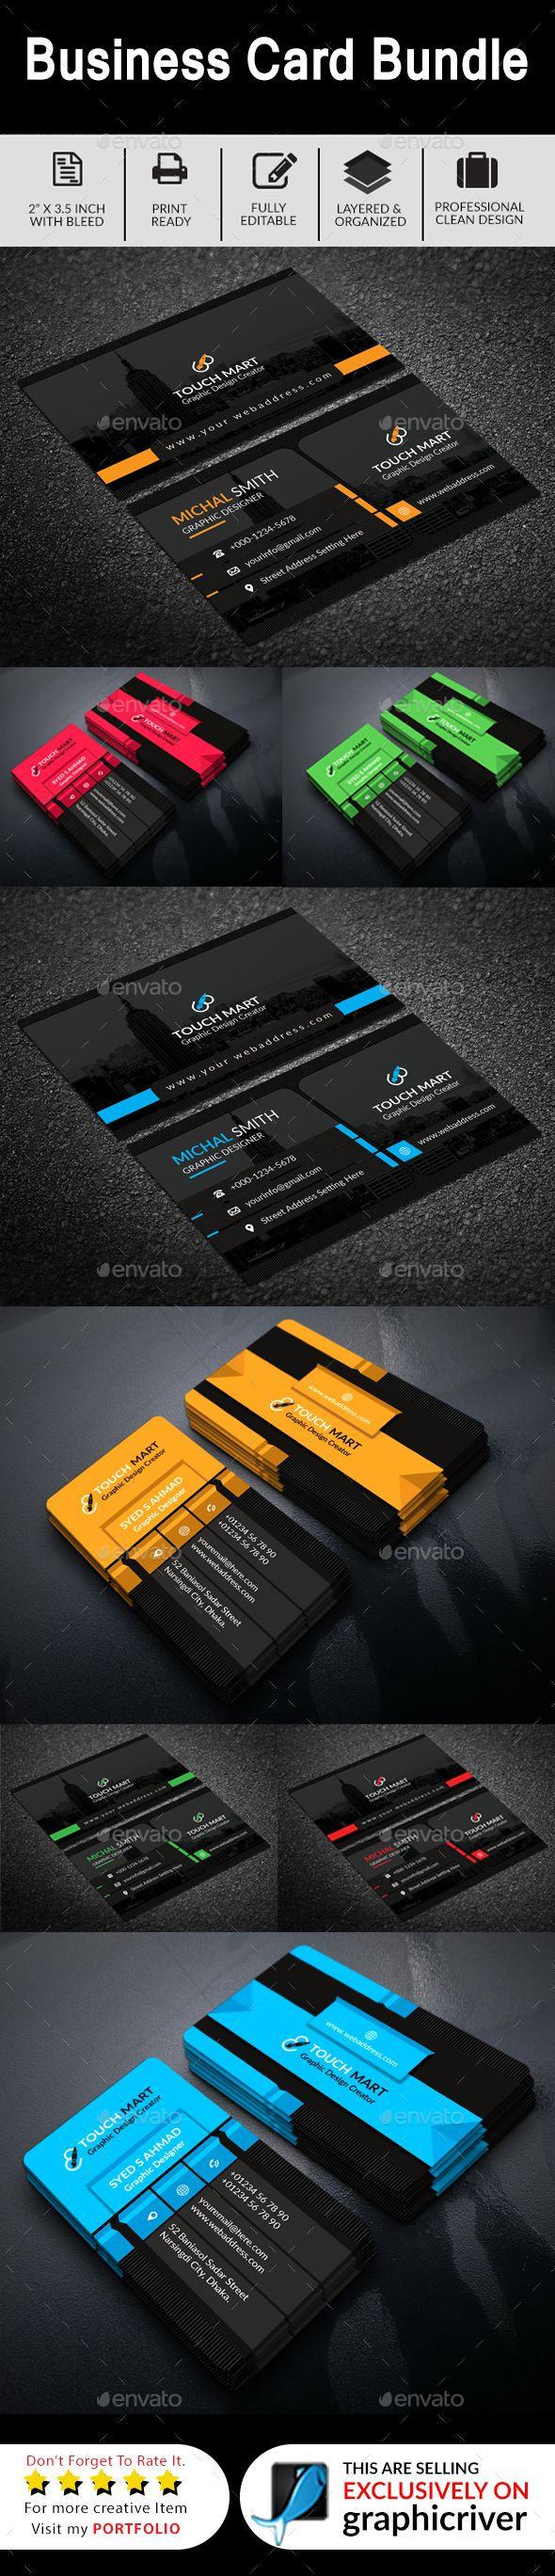 Business Card | Pinterest | Resolución de conflictos, Tarjetas y ...